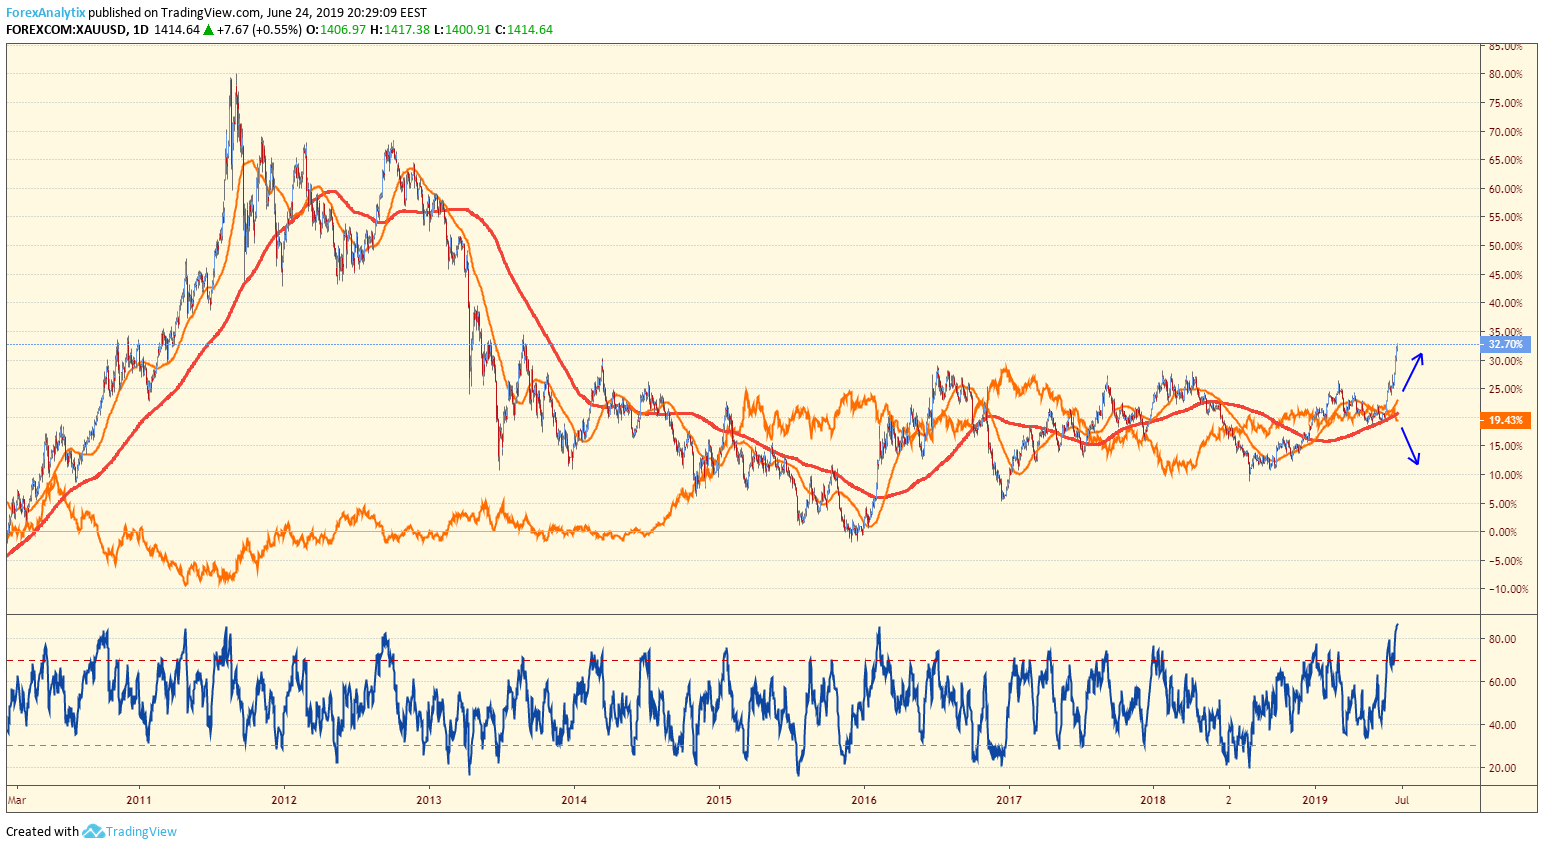 Gold - DXY Correlation